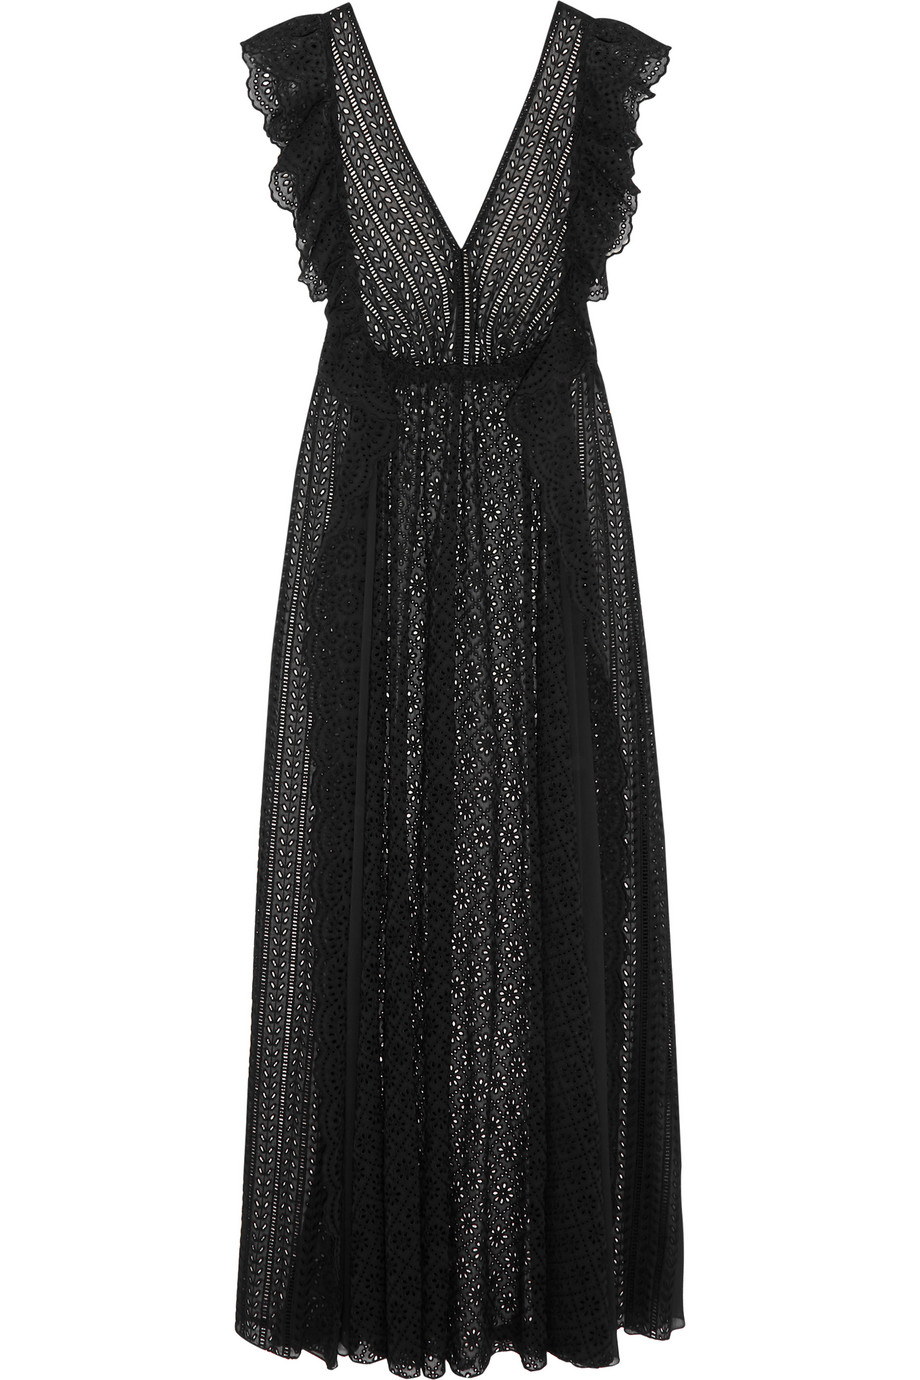 Ruffled Broderie Anglaise Cotton-Blend and Chiffon Maxi Dress, Black, Women's, Size: 44